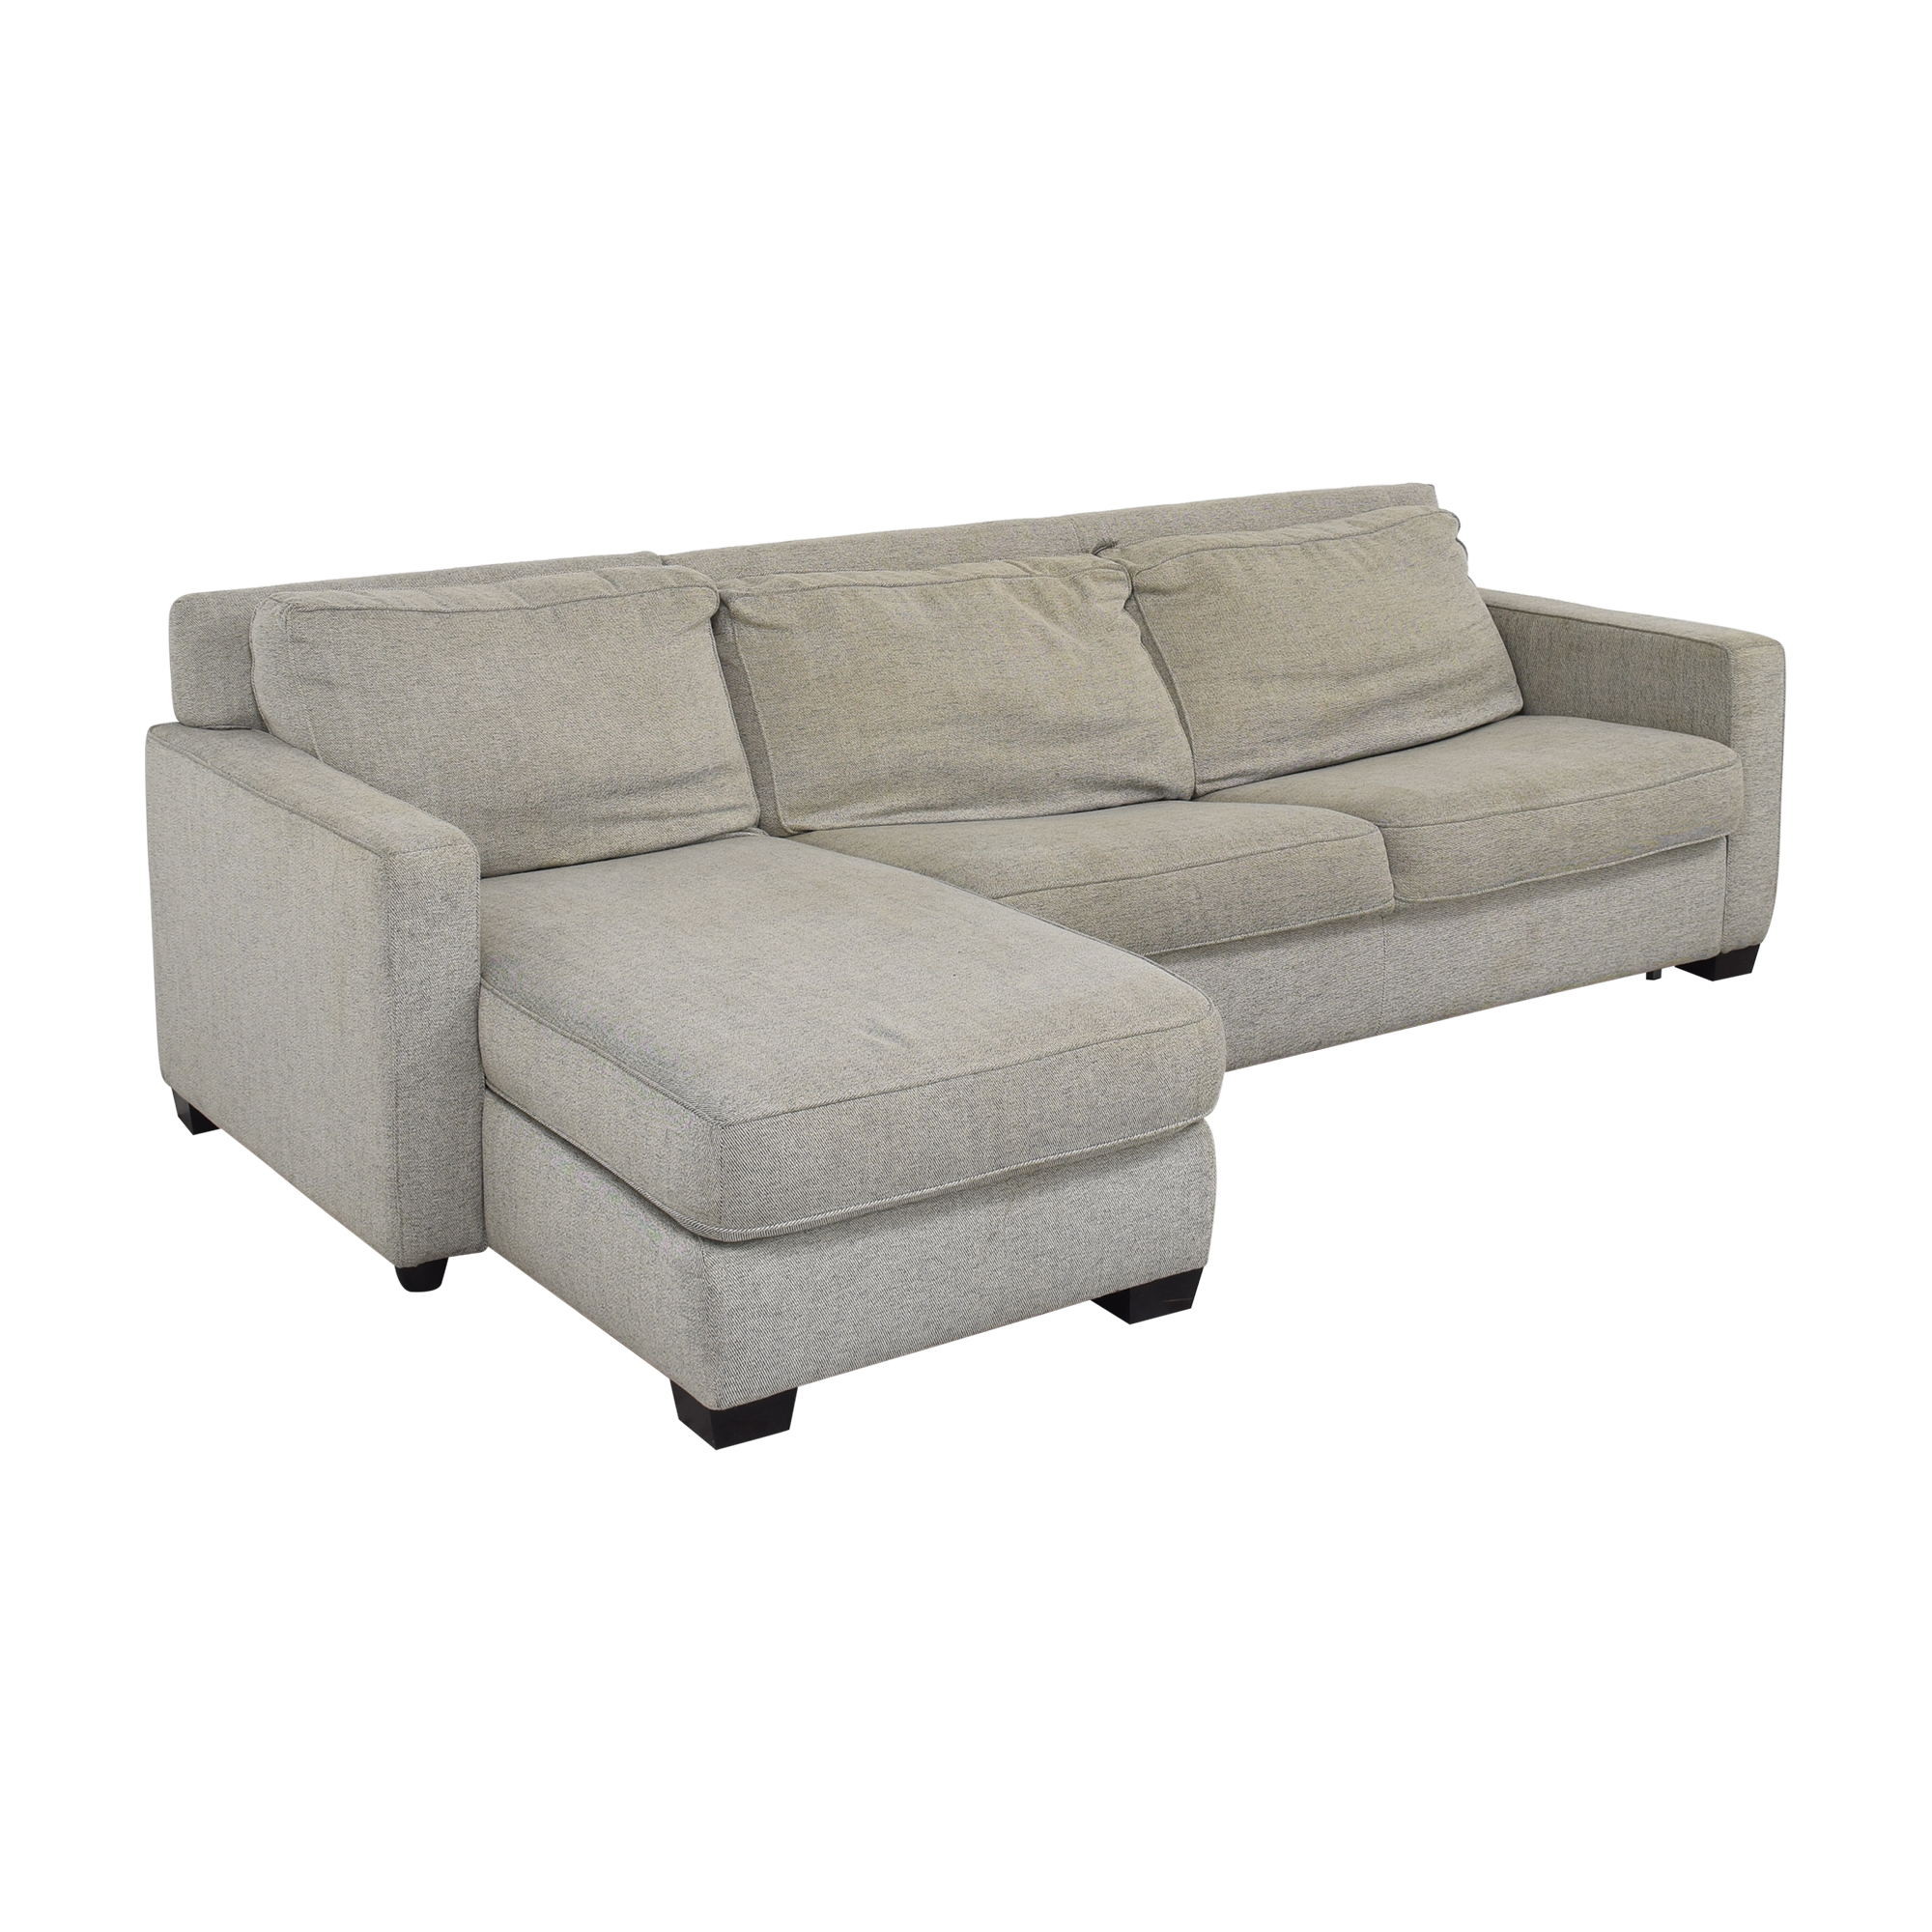 West Elm West Elm Henry 2-Piece Full Sleeper Sectional with Storage ct